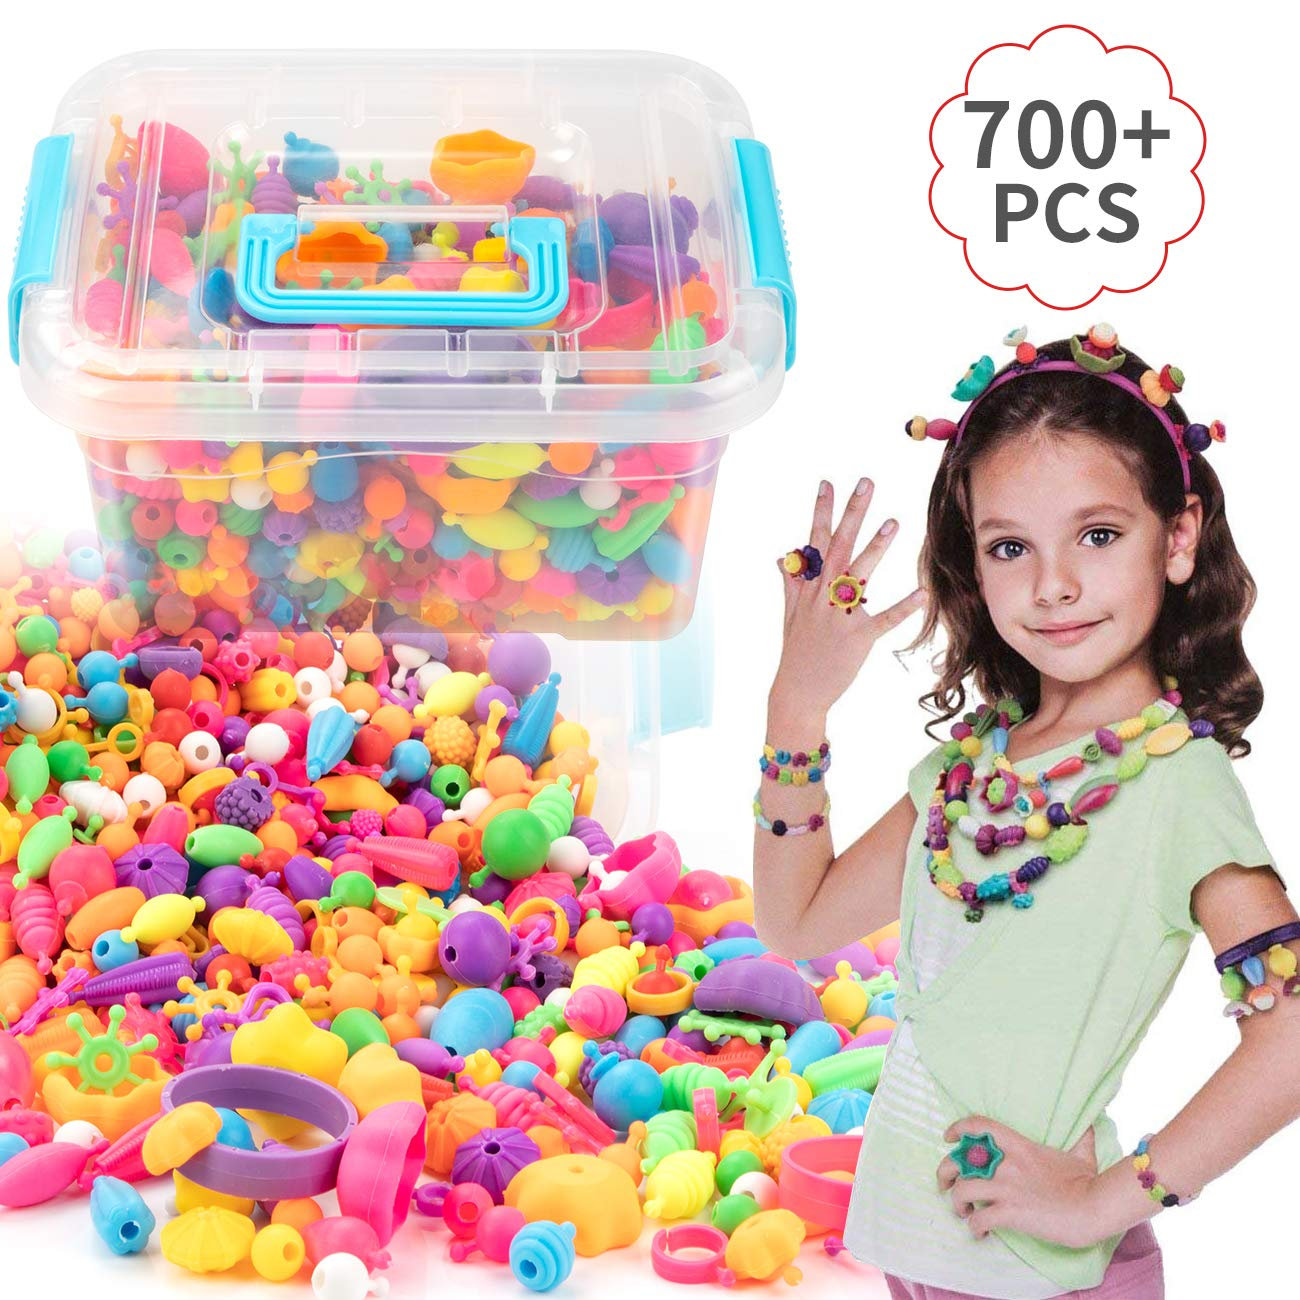 EXTSUD Pop Beads Set 700PCS DIY Jewelry Set BPA Free Making Necklace Bracelet Hairband and Ring Pop Snap Beads Set Creativity DIY Set for Girls Toddlers Kid